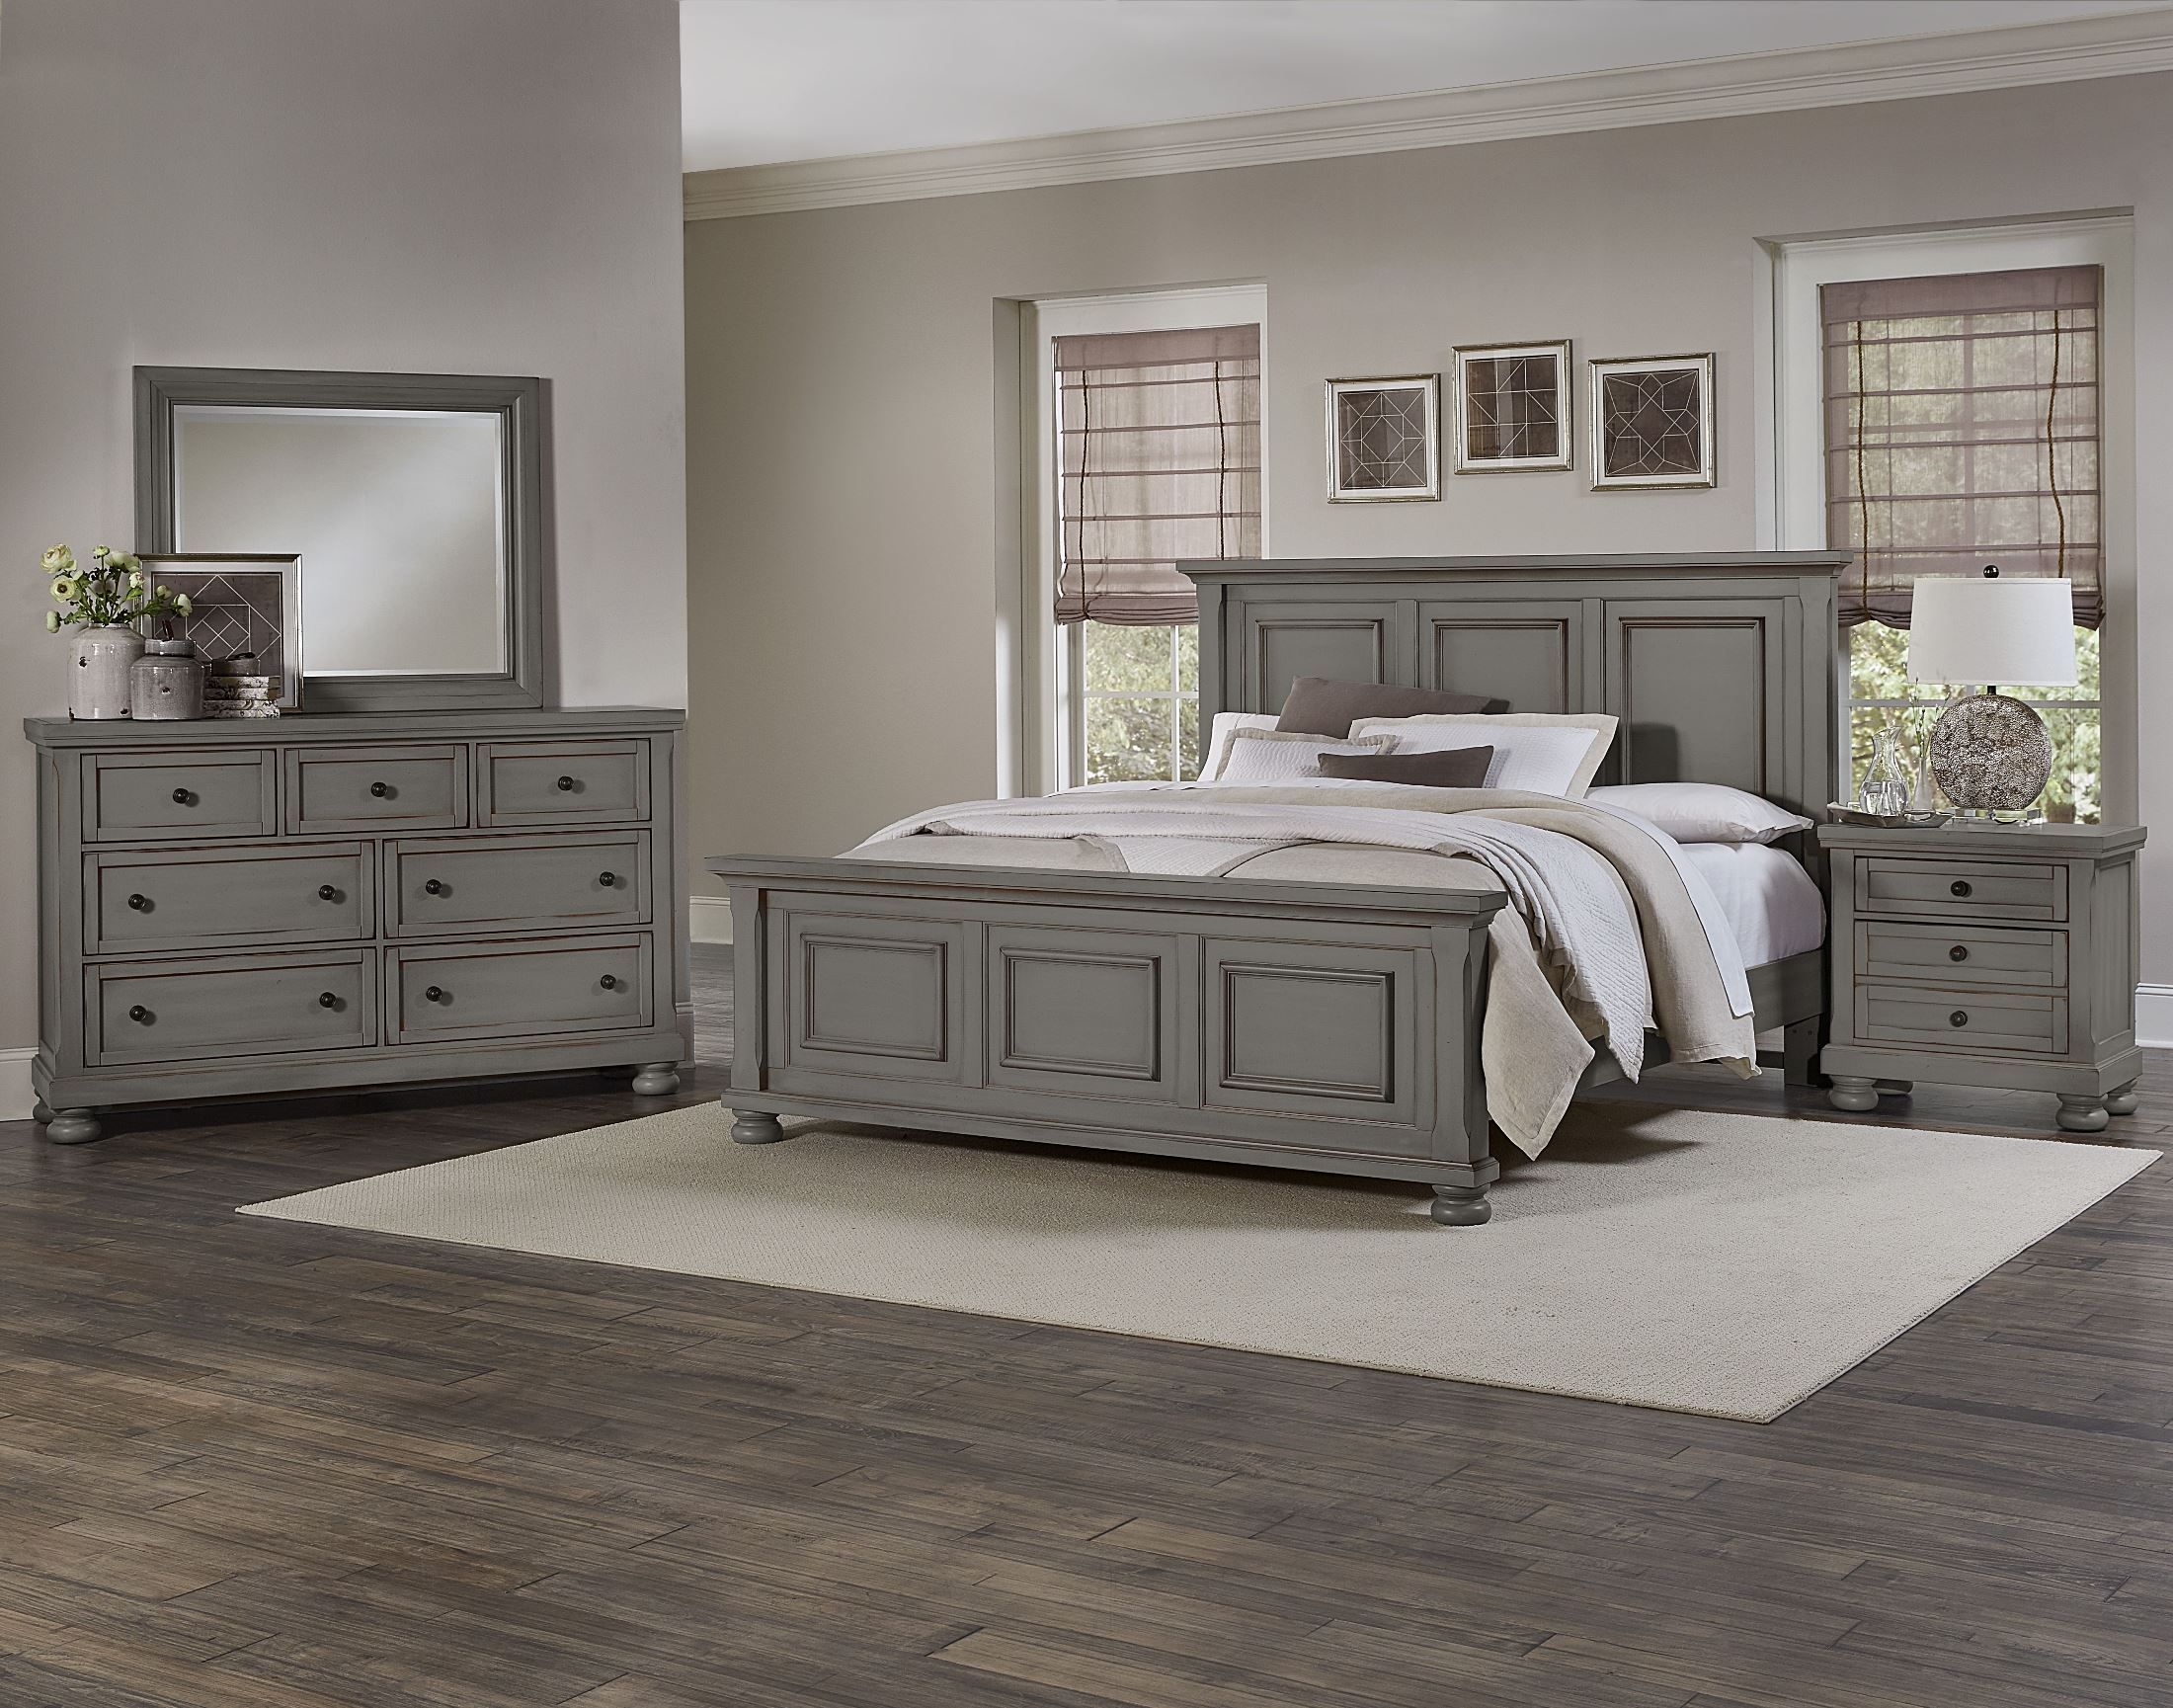 Reflections Antique Pewter Youth Mansion Bedroom Set Grey Bedroom Furniture Mansion Bedroom Bedroom Sets